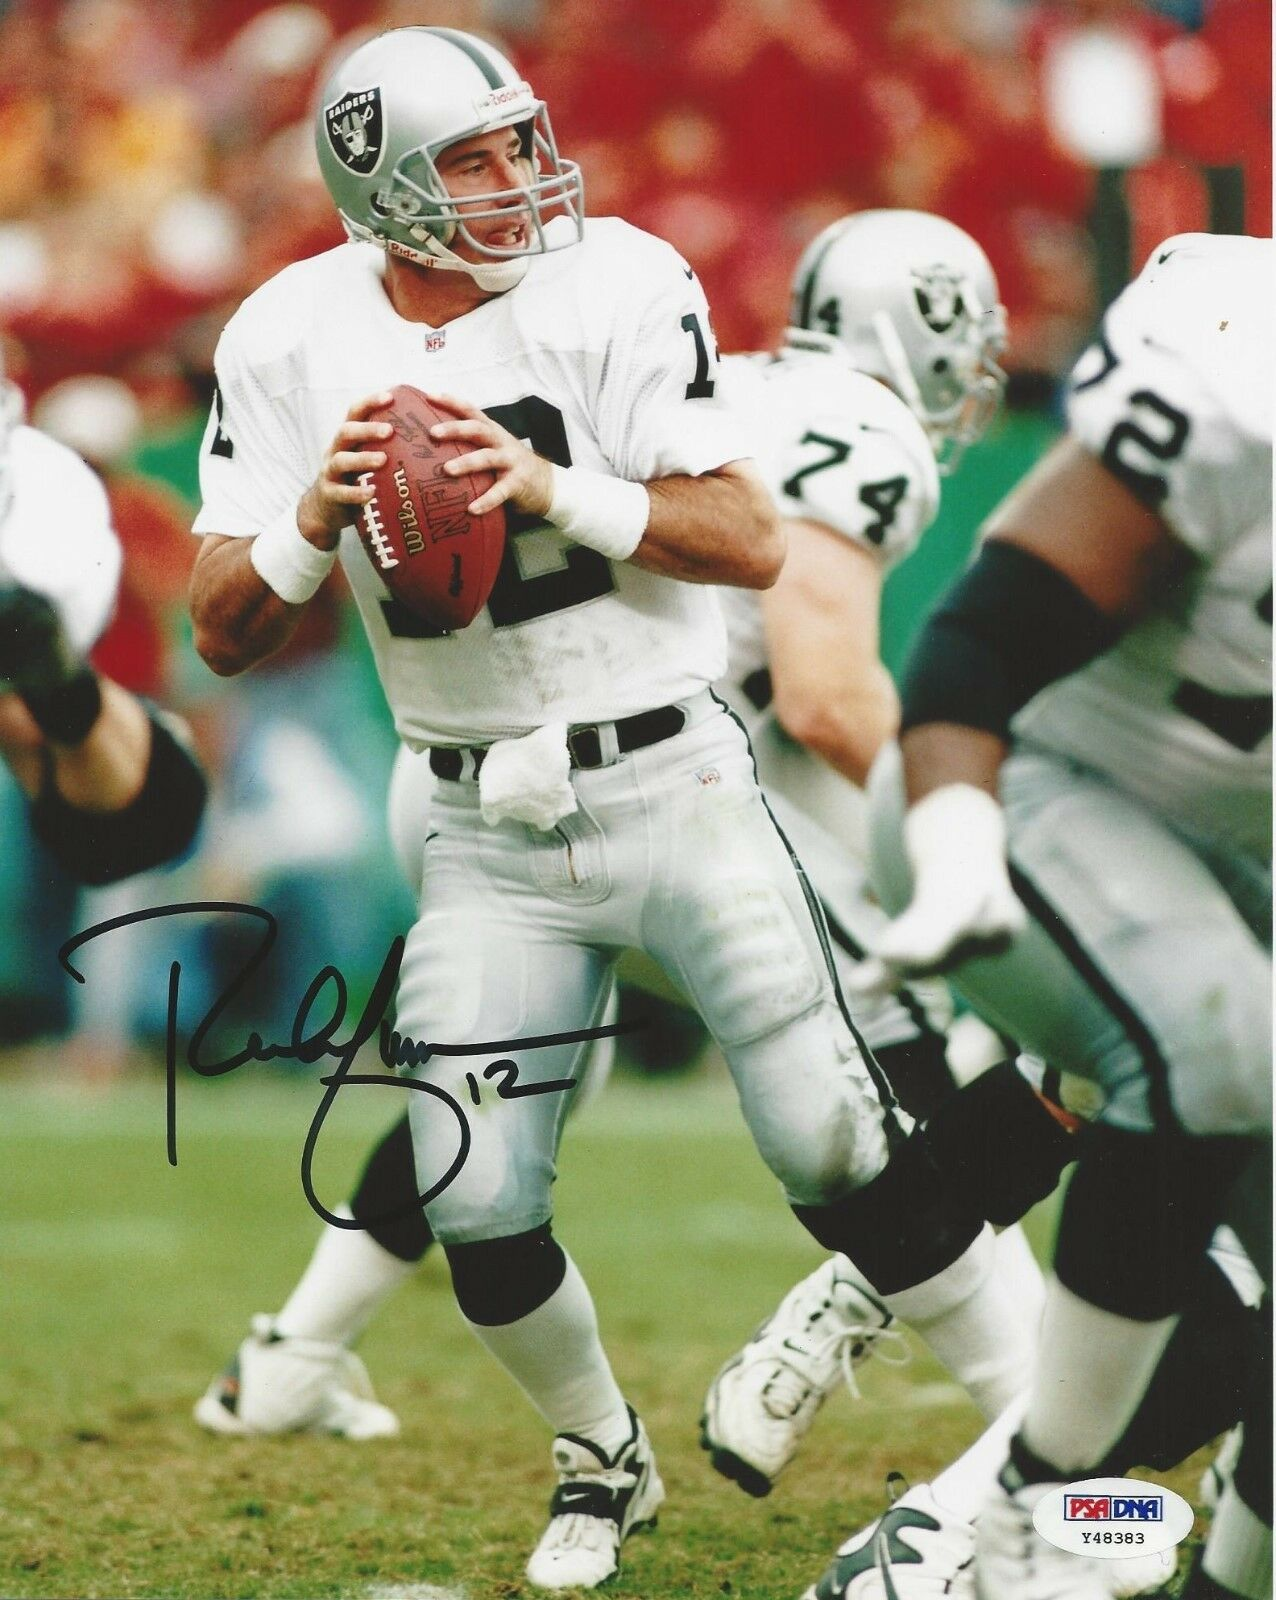 Rich Gannon Oakland Raiders signed 8x10 Photo PSA/DNA # Y48383